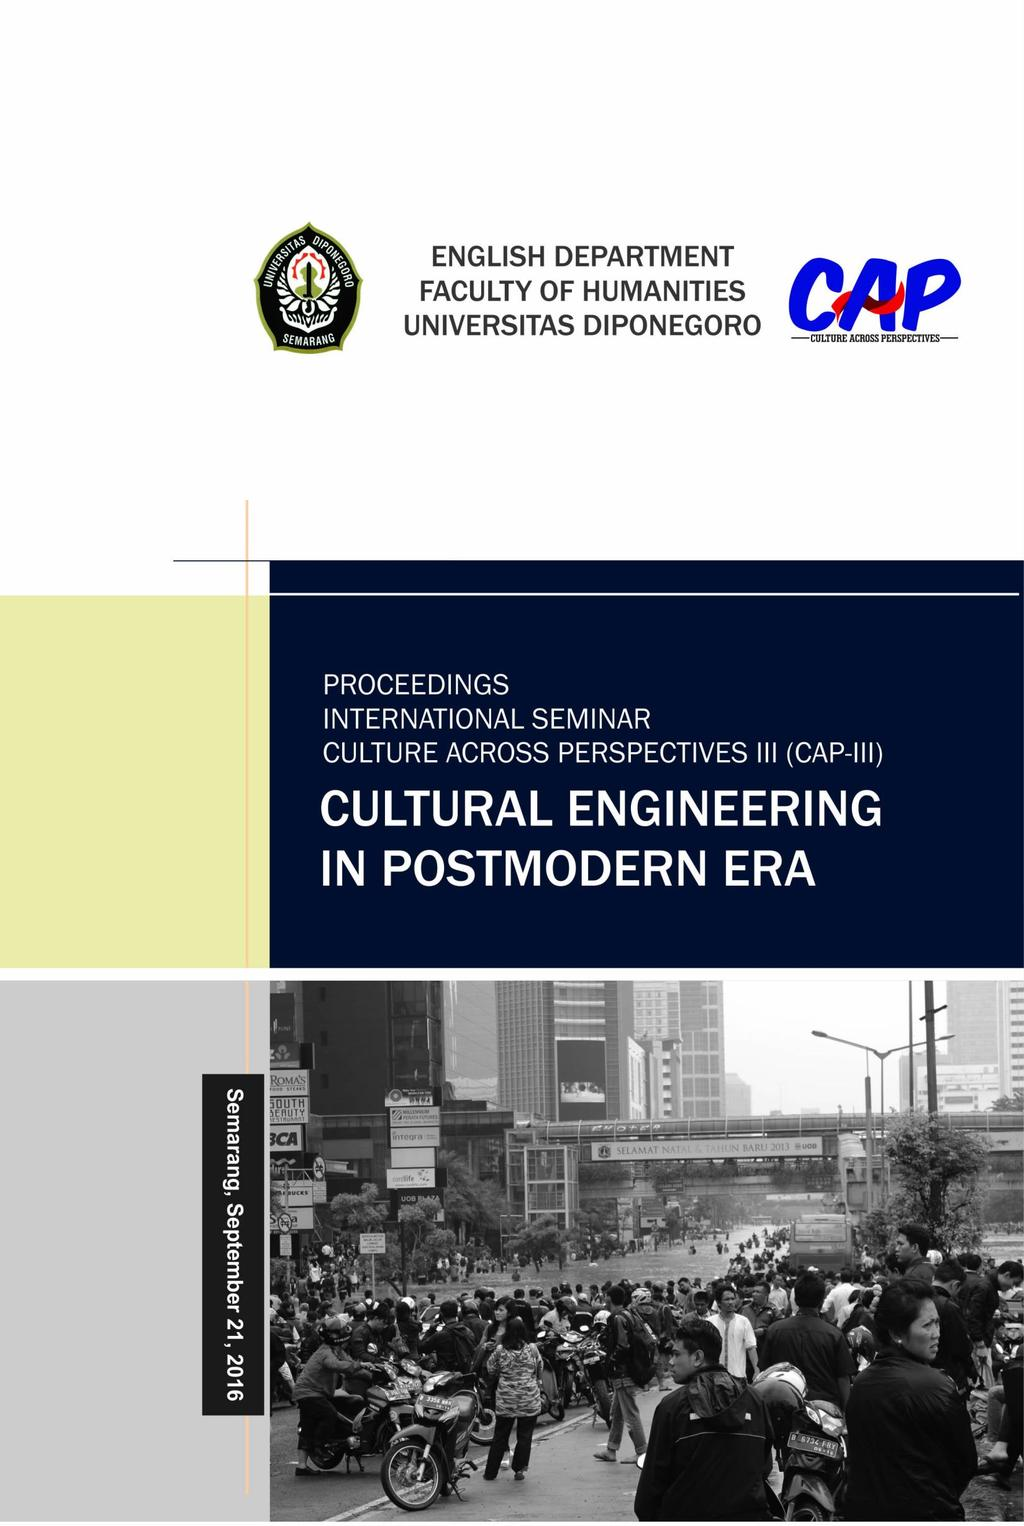 Proceedings International Seminar Culture Across Perspectives Iii Baju Camo Hutan 2 Tangan Panjang Transcription